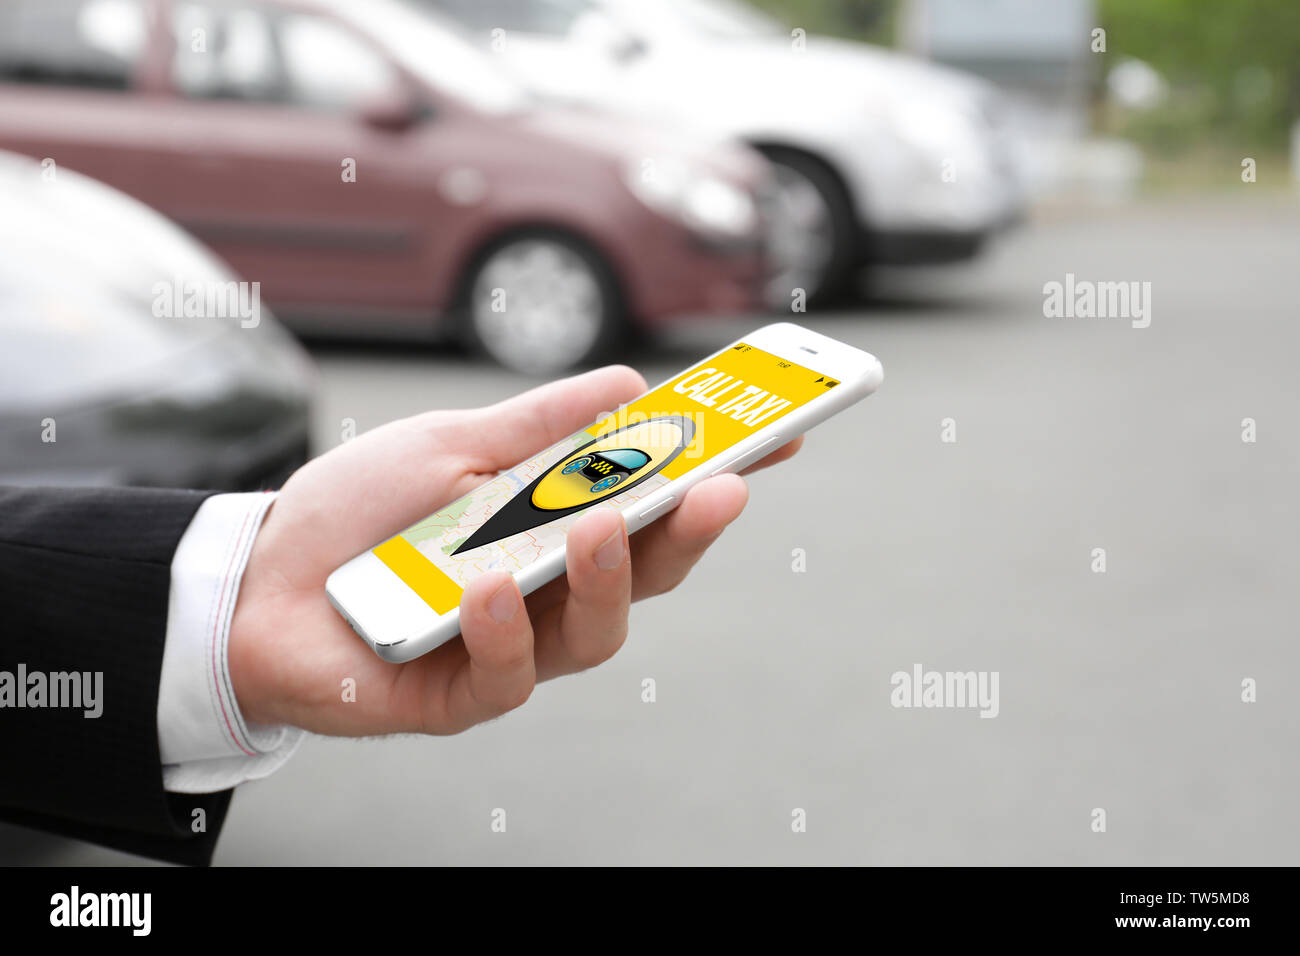 Young man using application on phone for calling taxi outdoors - Stock Image